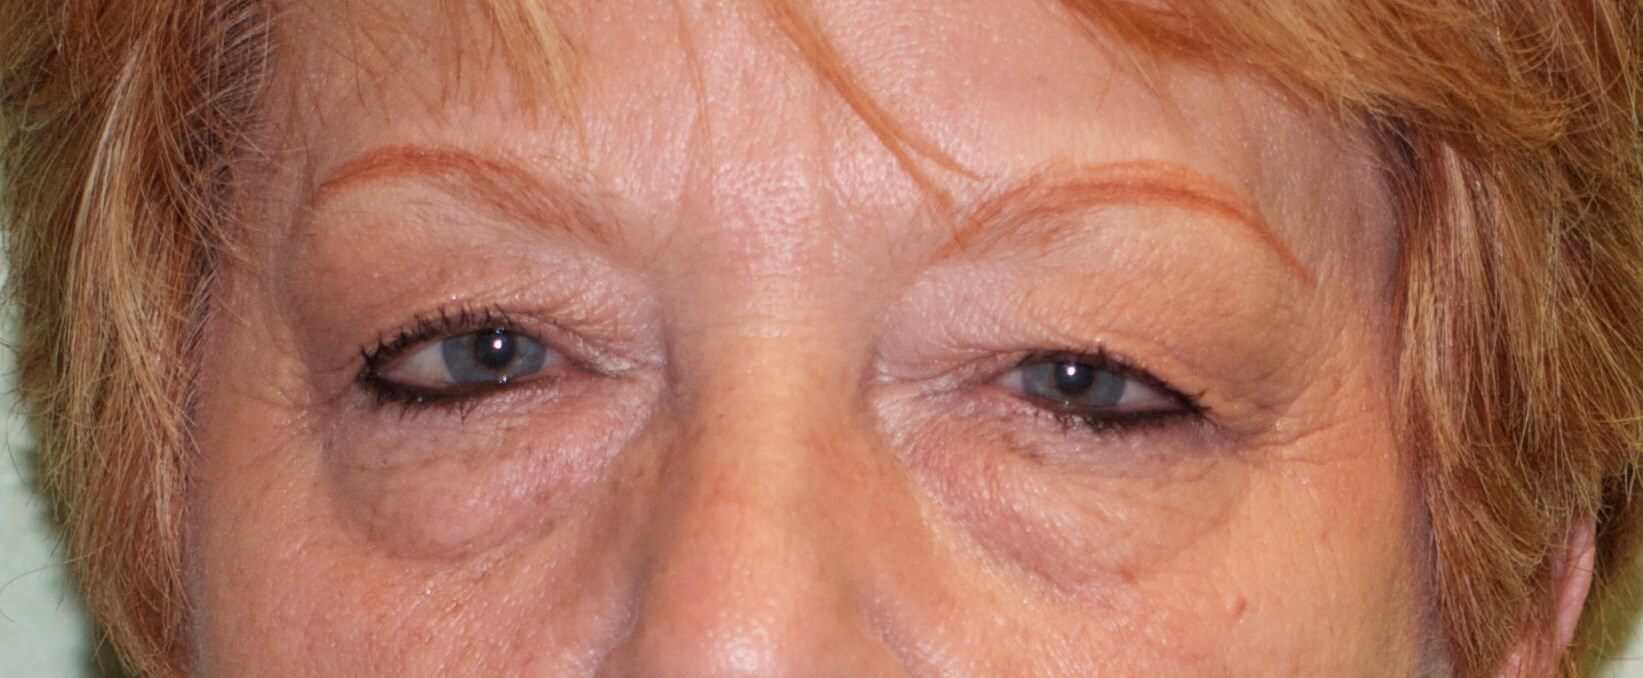 Blepharoplasty for Puffy Eyes Before